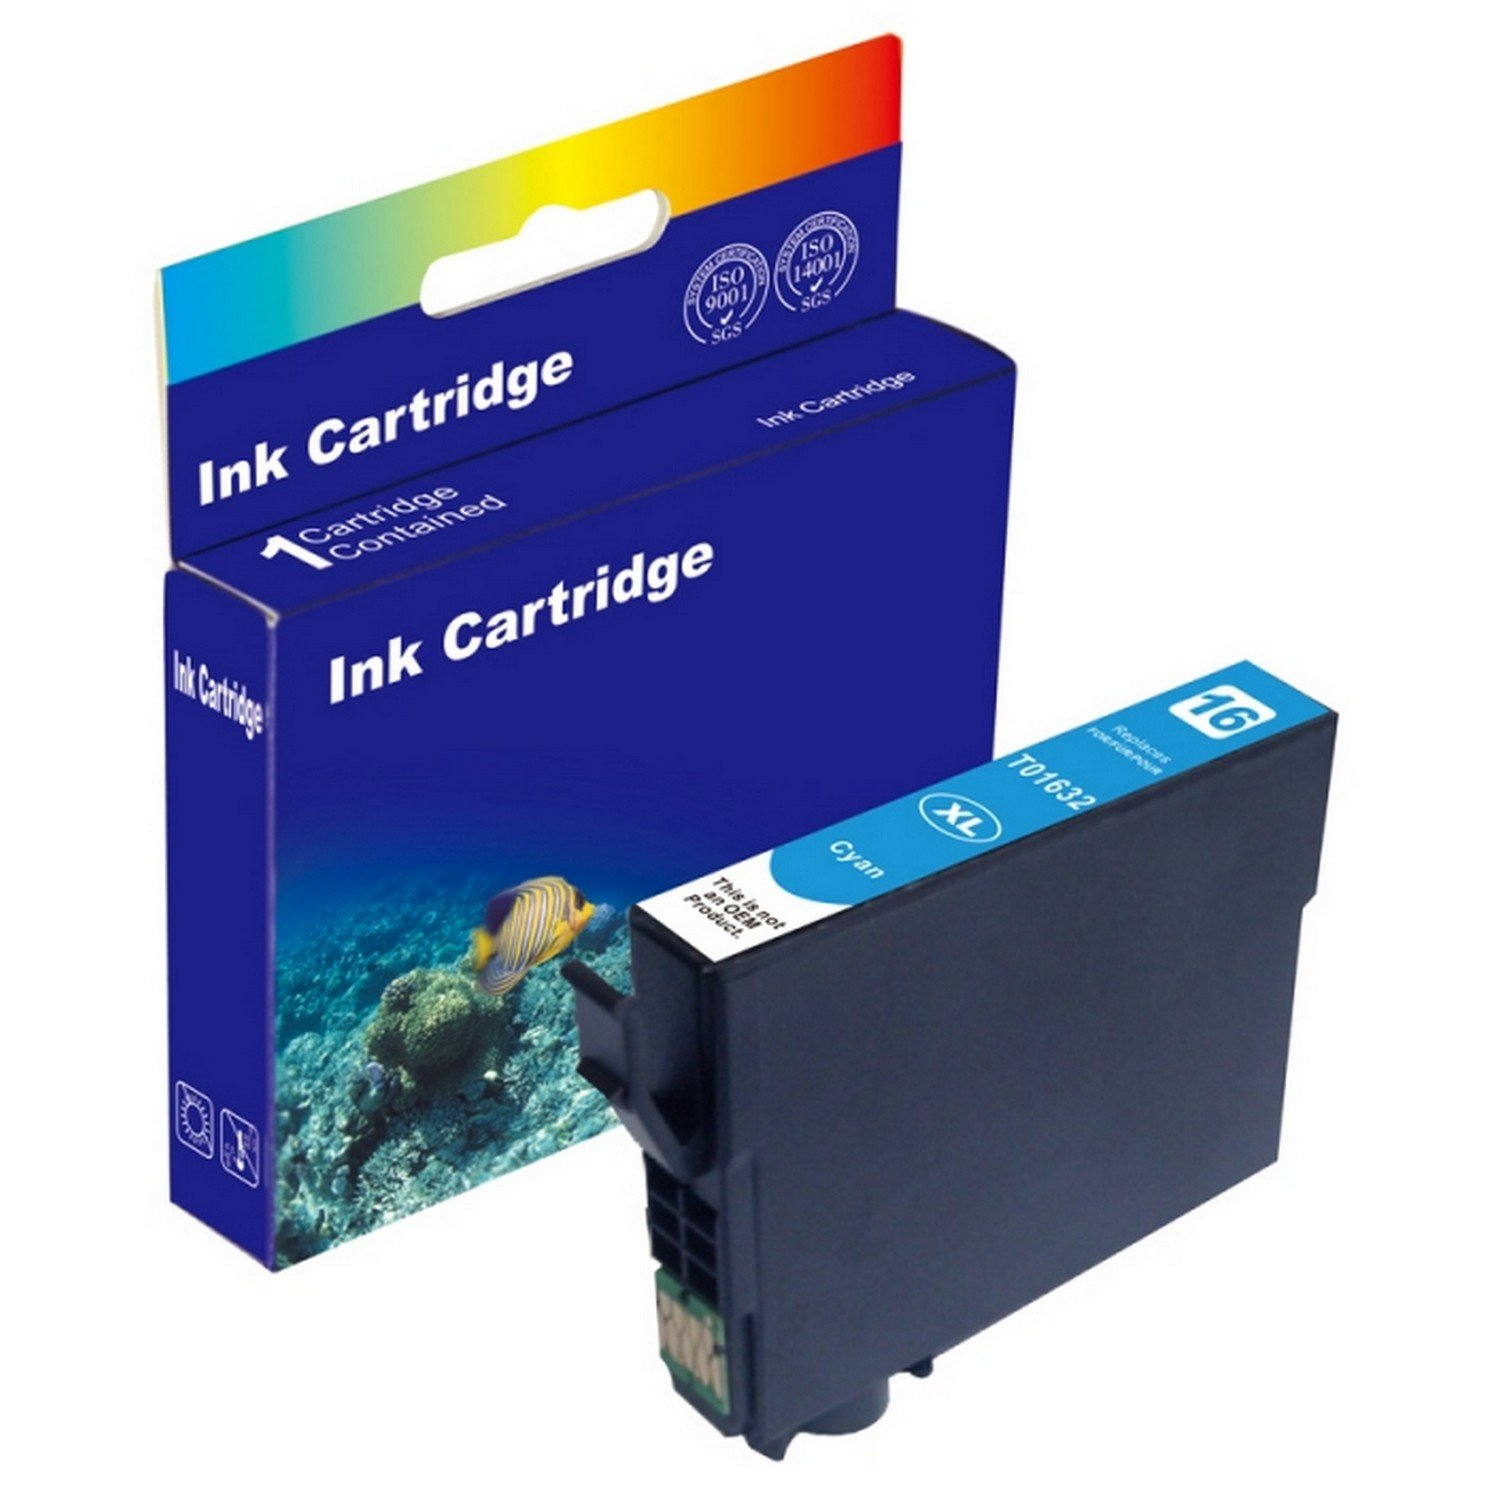 Tinta D&C, no original, para impresoras Epson Workforce WF ...